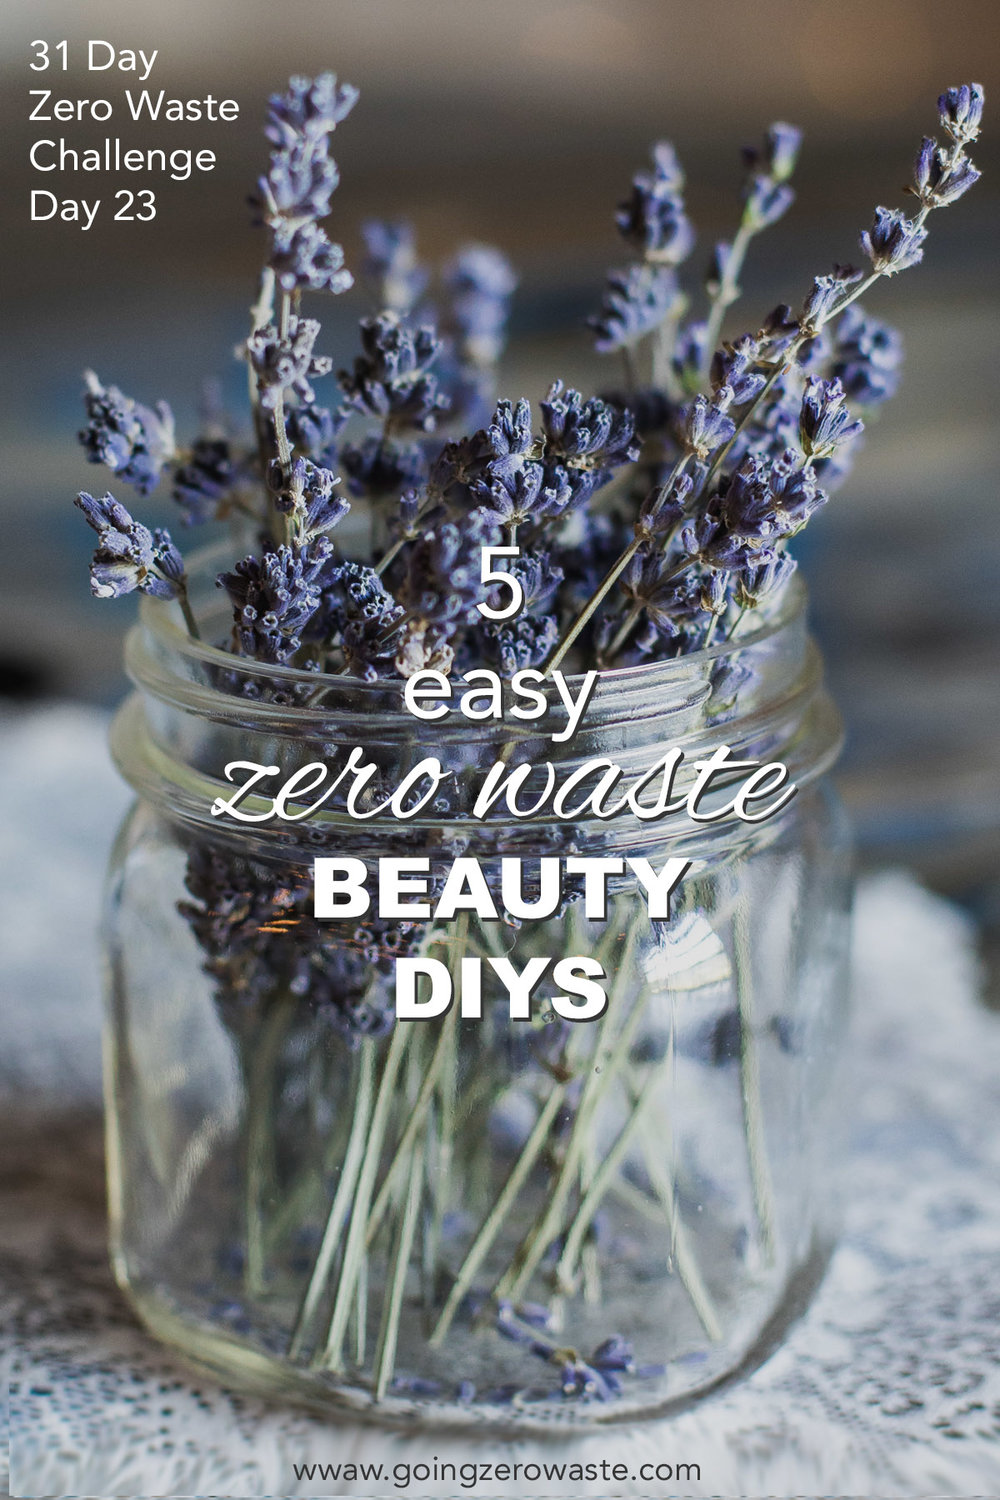 5 Easy, Zero Waste Beauty DIYS from www.goingzerowaste.com 31 Day Zero Waste Challenge #zerowaste #zerowastechallenge #beauty #DIY